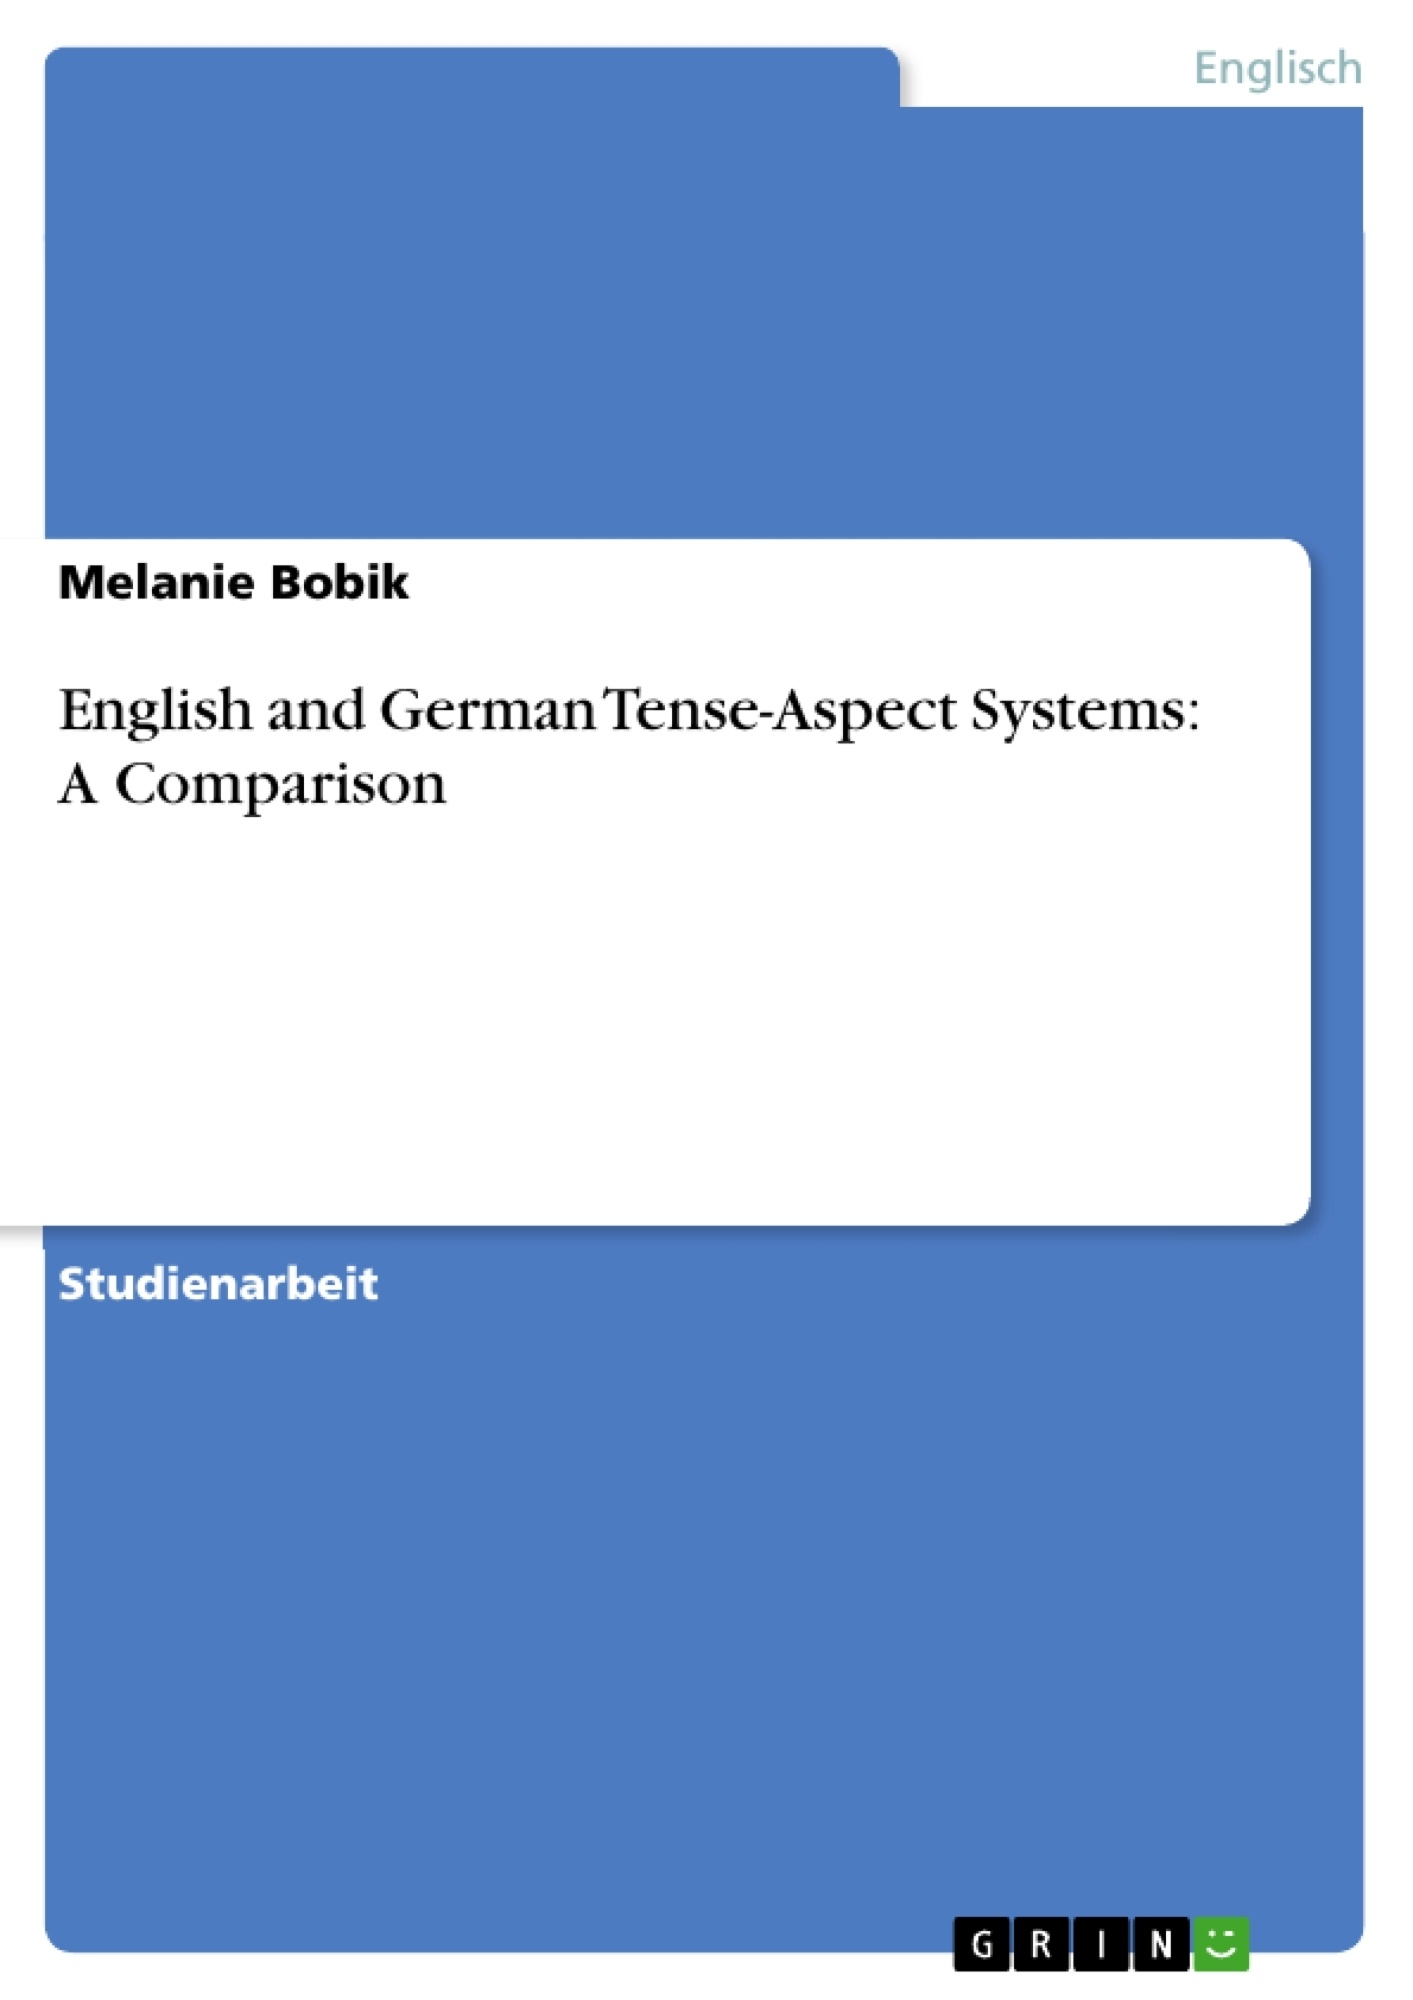 Titel: English and German Tense-Aspect Systems: A Comparison